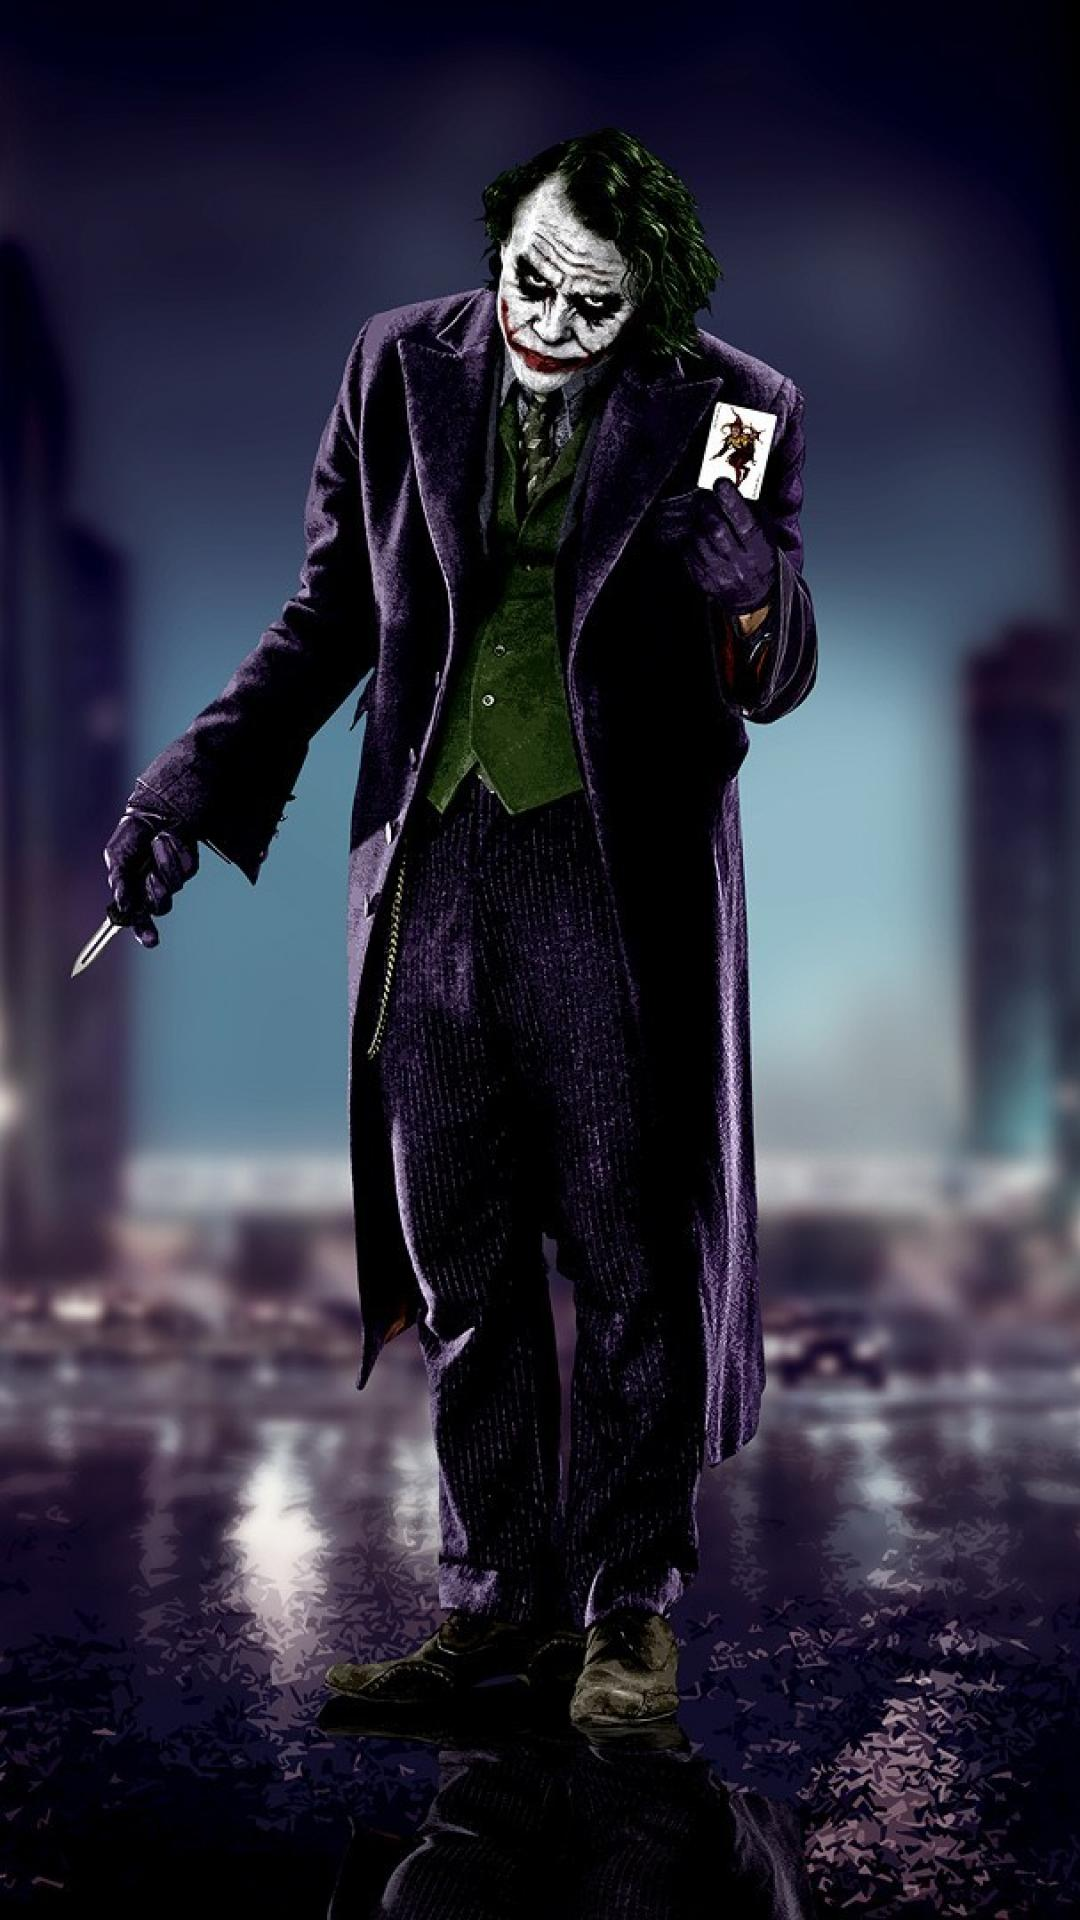 New Joker Wallpapers - Top Free New Joker Backgrounds ...New 52 Joker Wallpaper